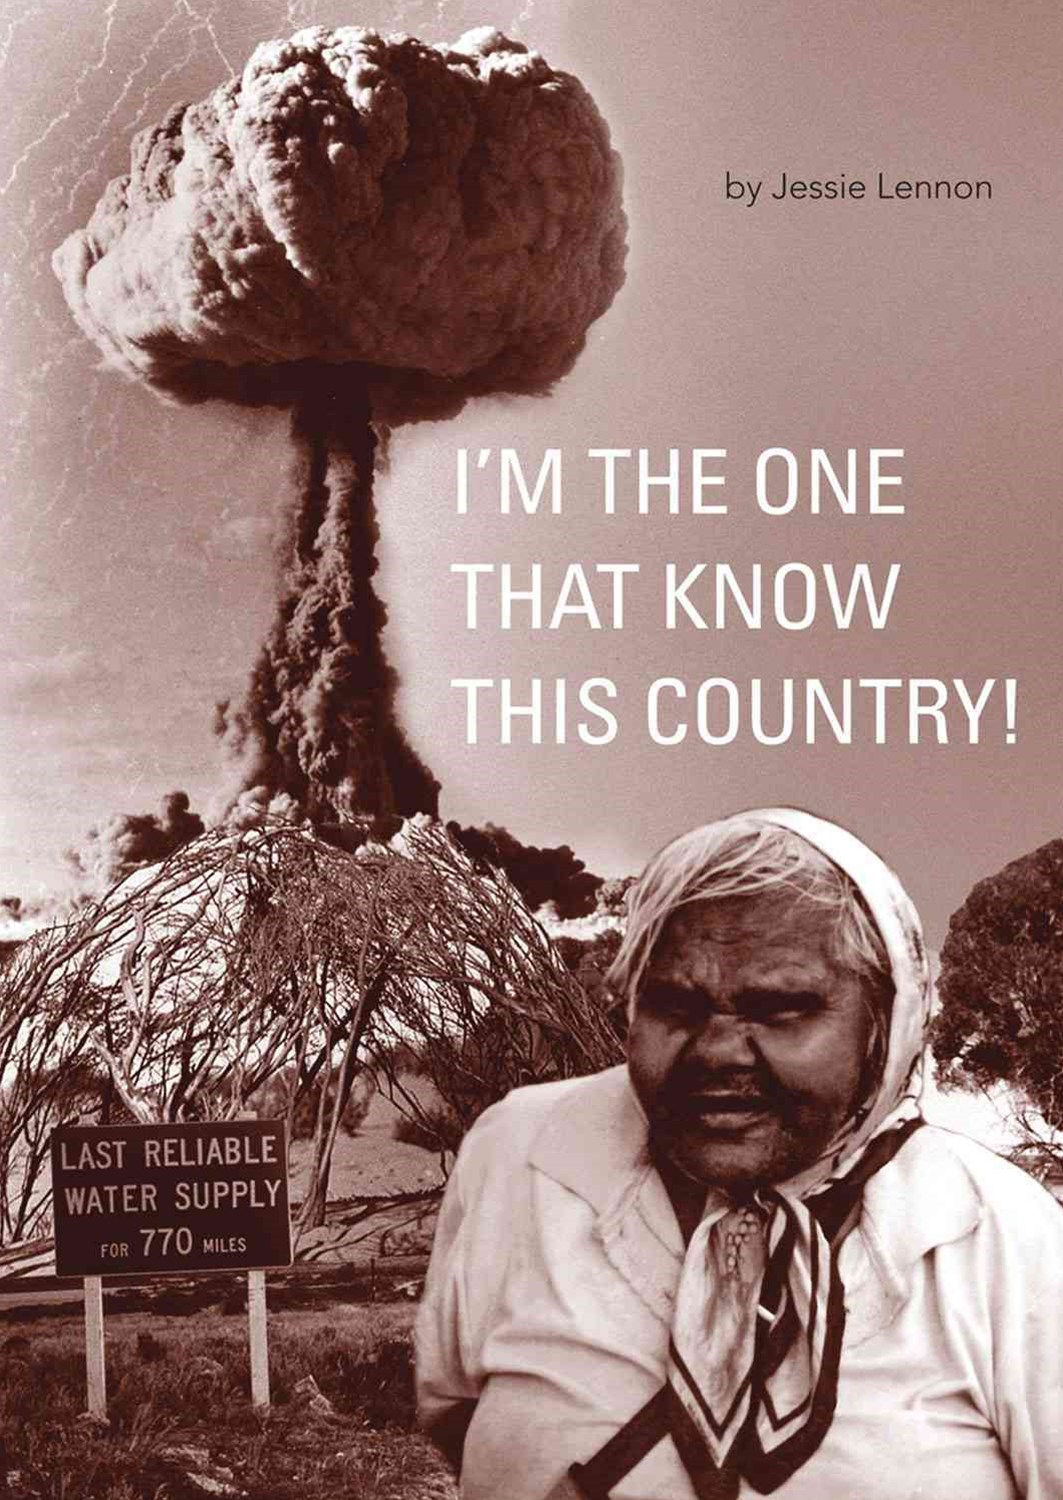 I'm the One that Know this Country!